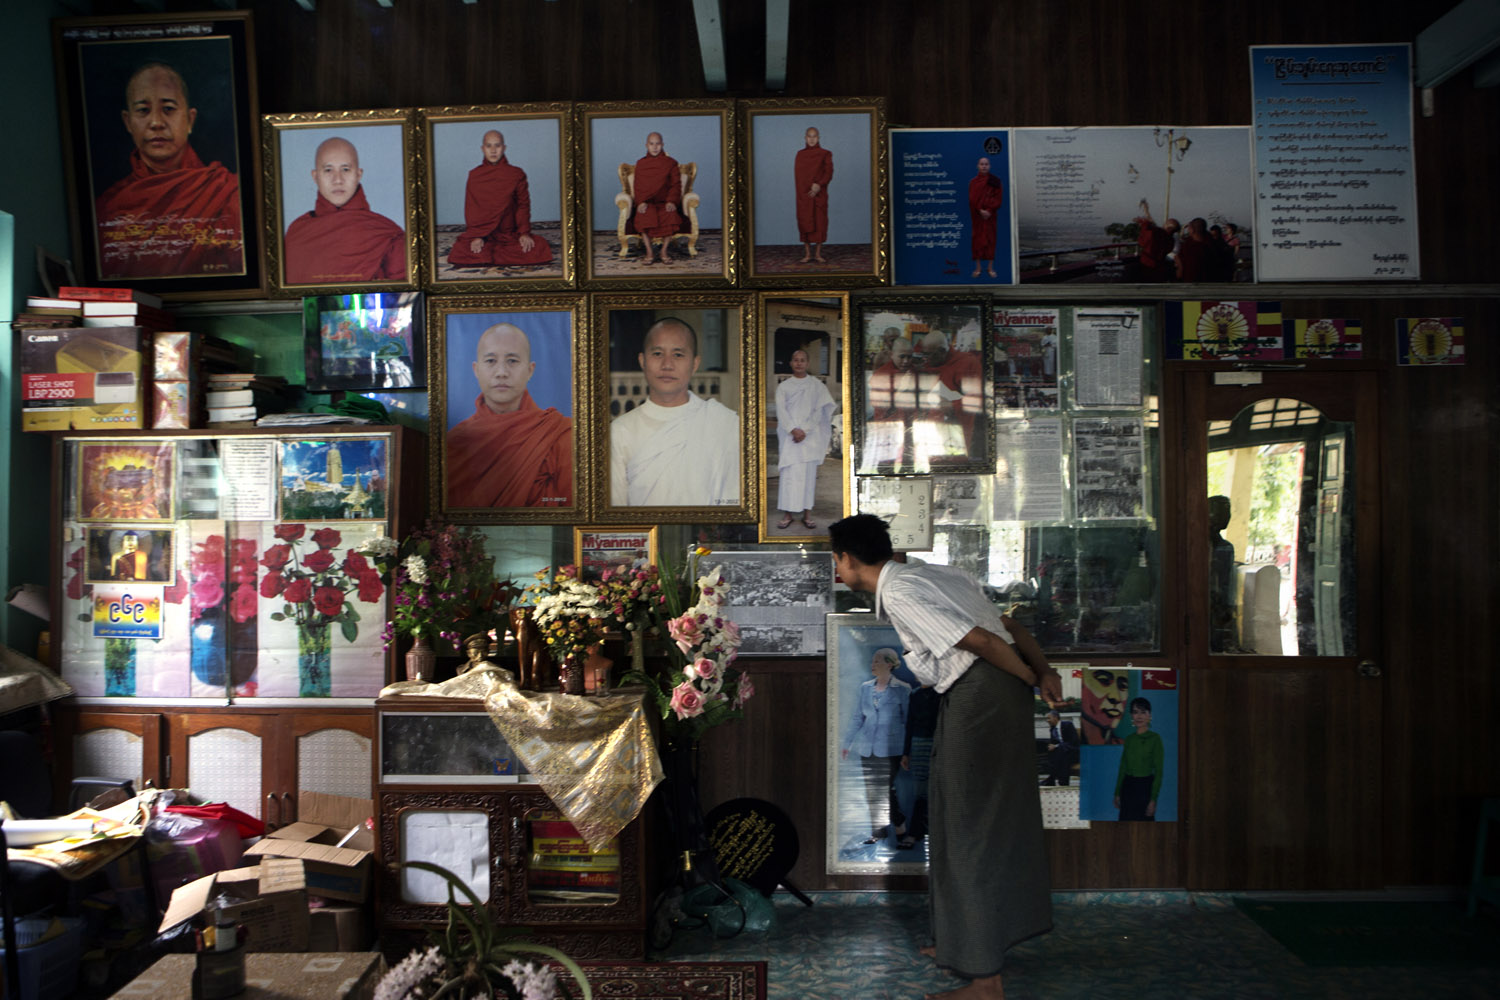 A supporters of Wirathu looks at photos of him on the wall of his quarters at the New Maesoeyin Monastery.